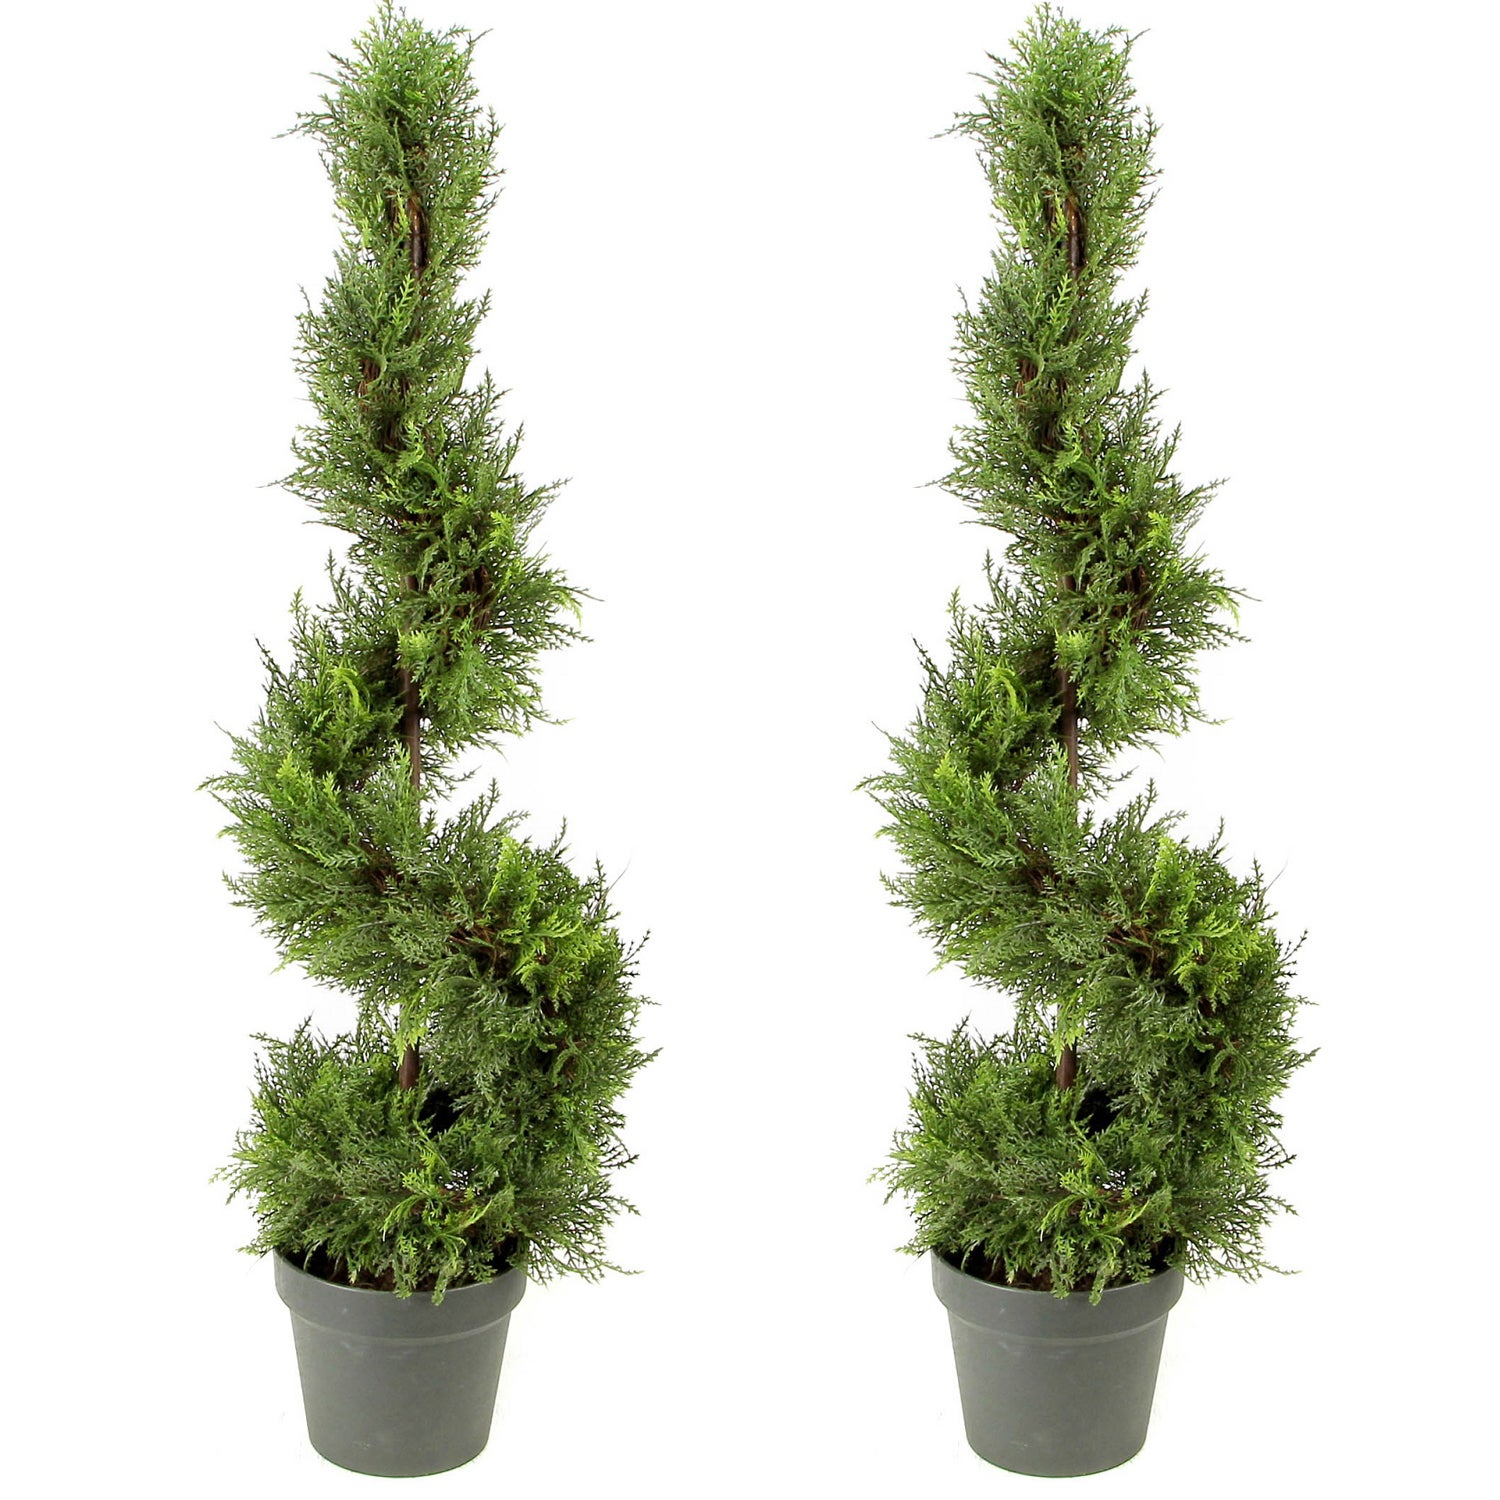 3 Foot Artificial Cypress Spiral Topiary Tree In Pot Set Of 2 Free Shipping Today 12972558